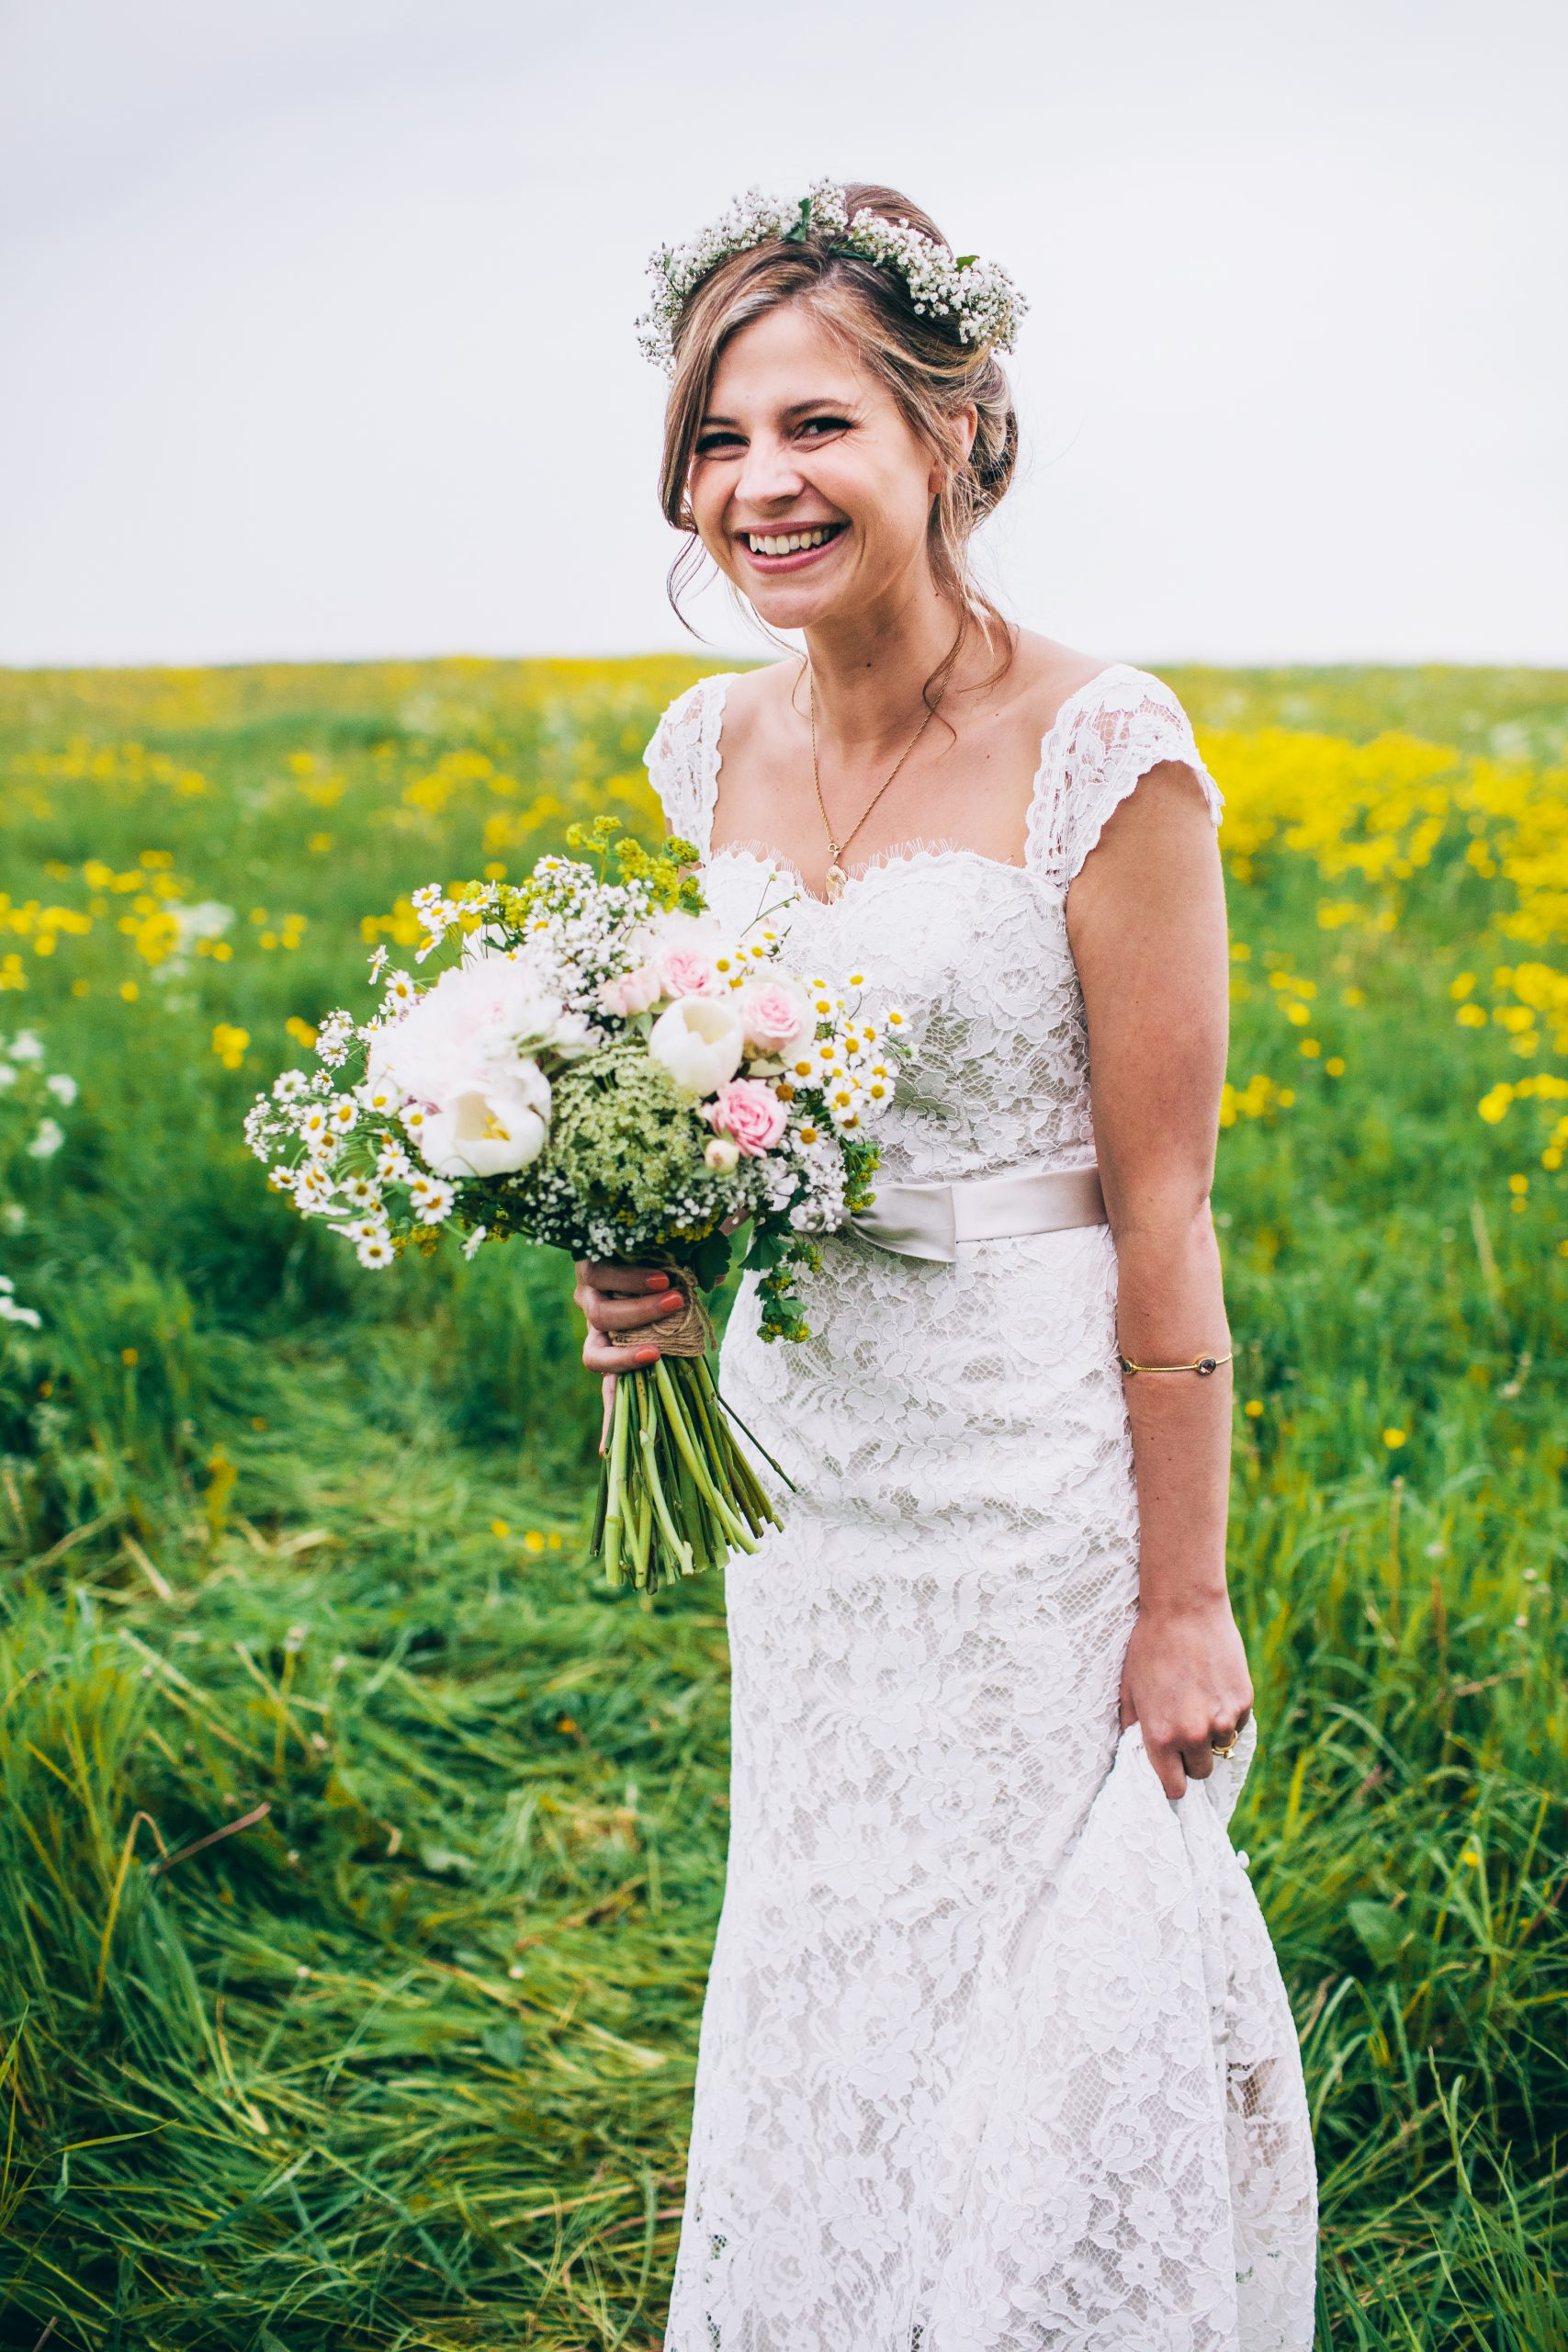 happy bride standing in yellow field at Cripps barn cotswold smiling